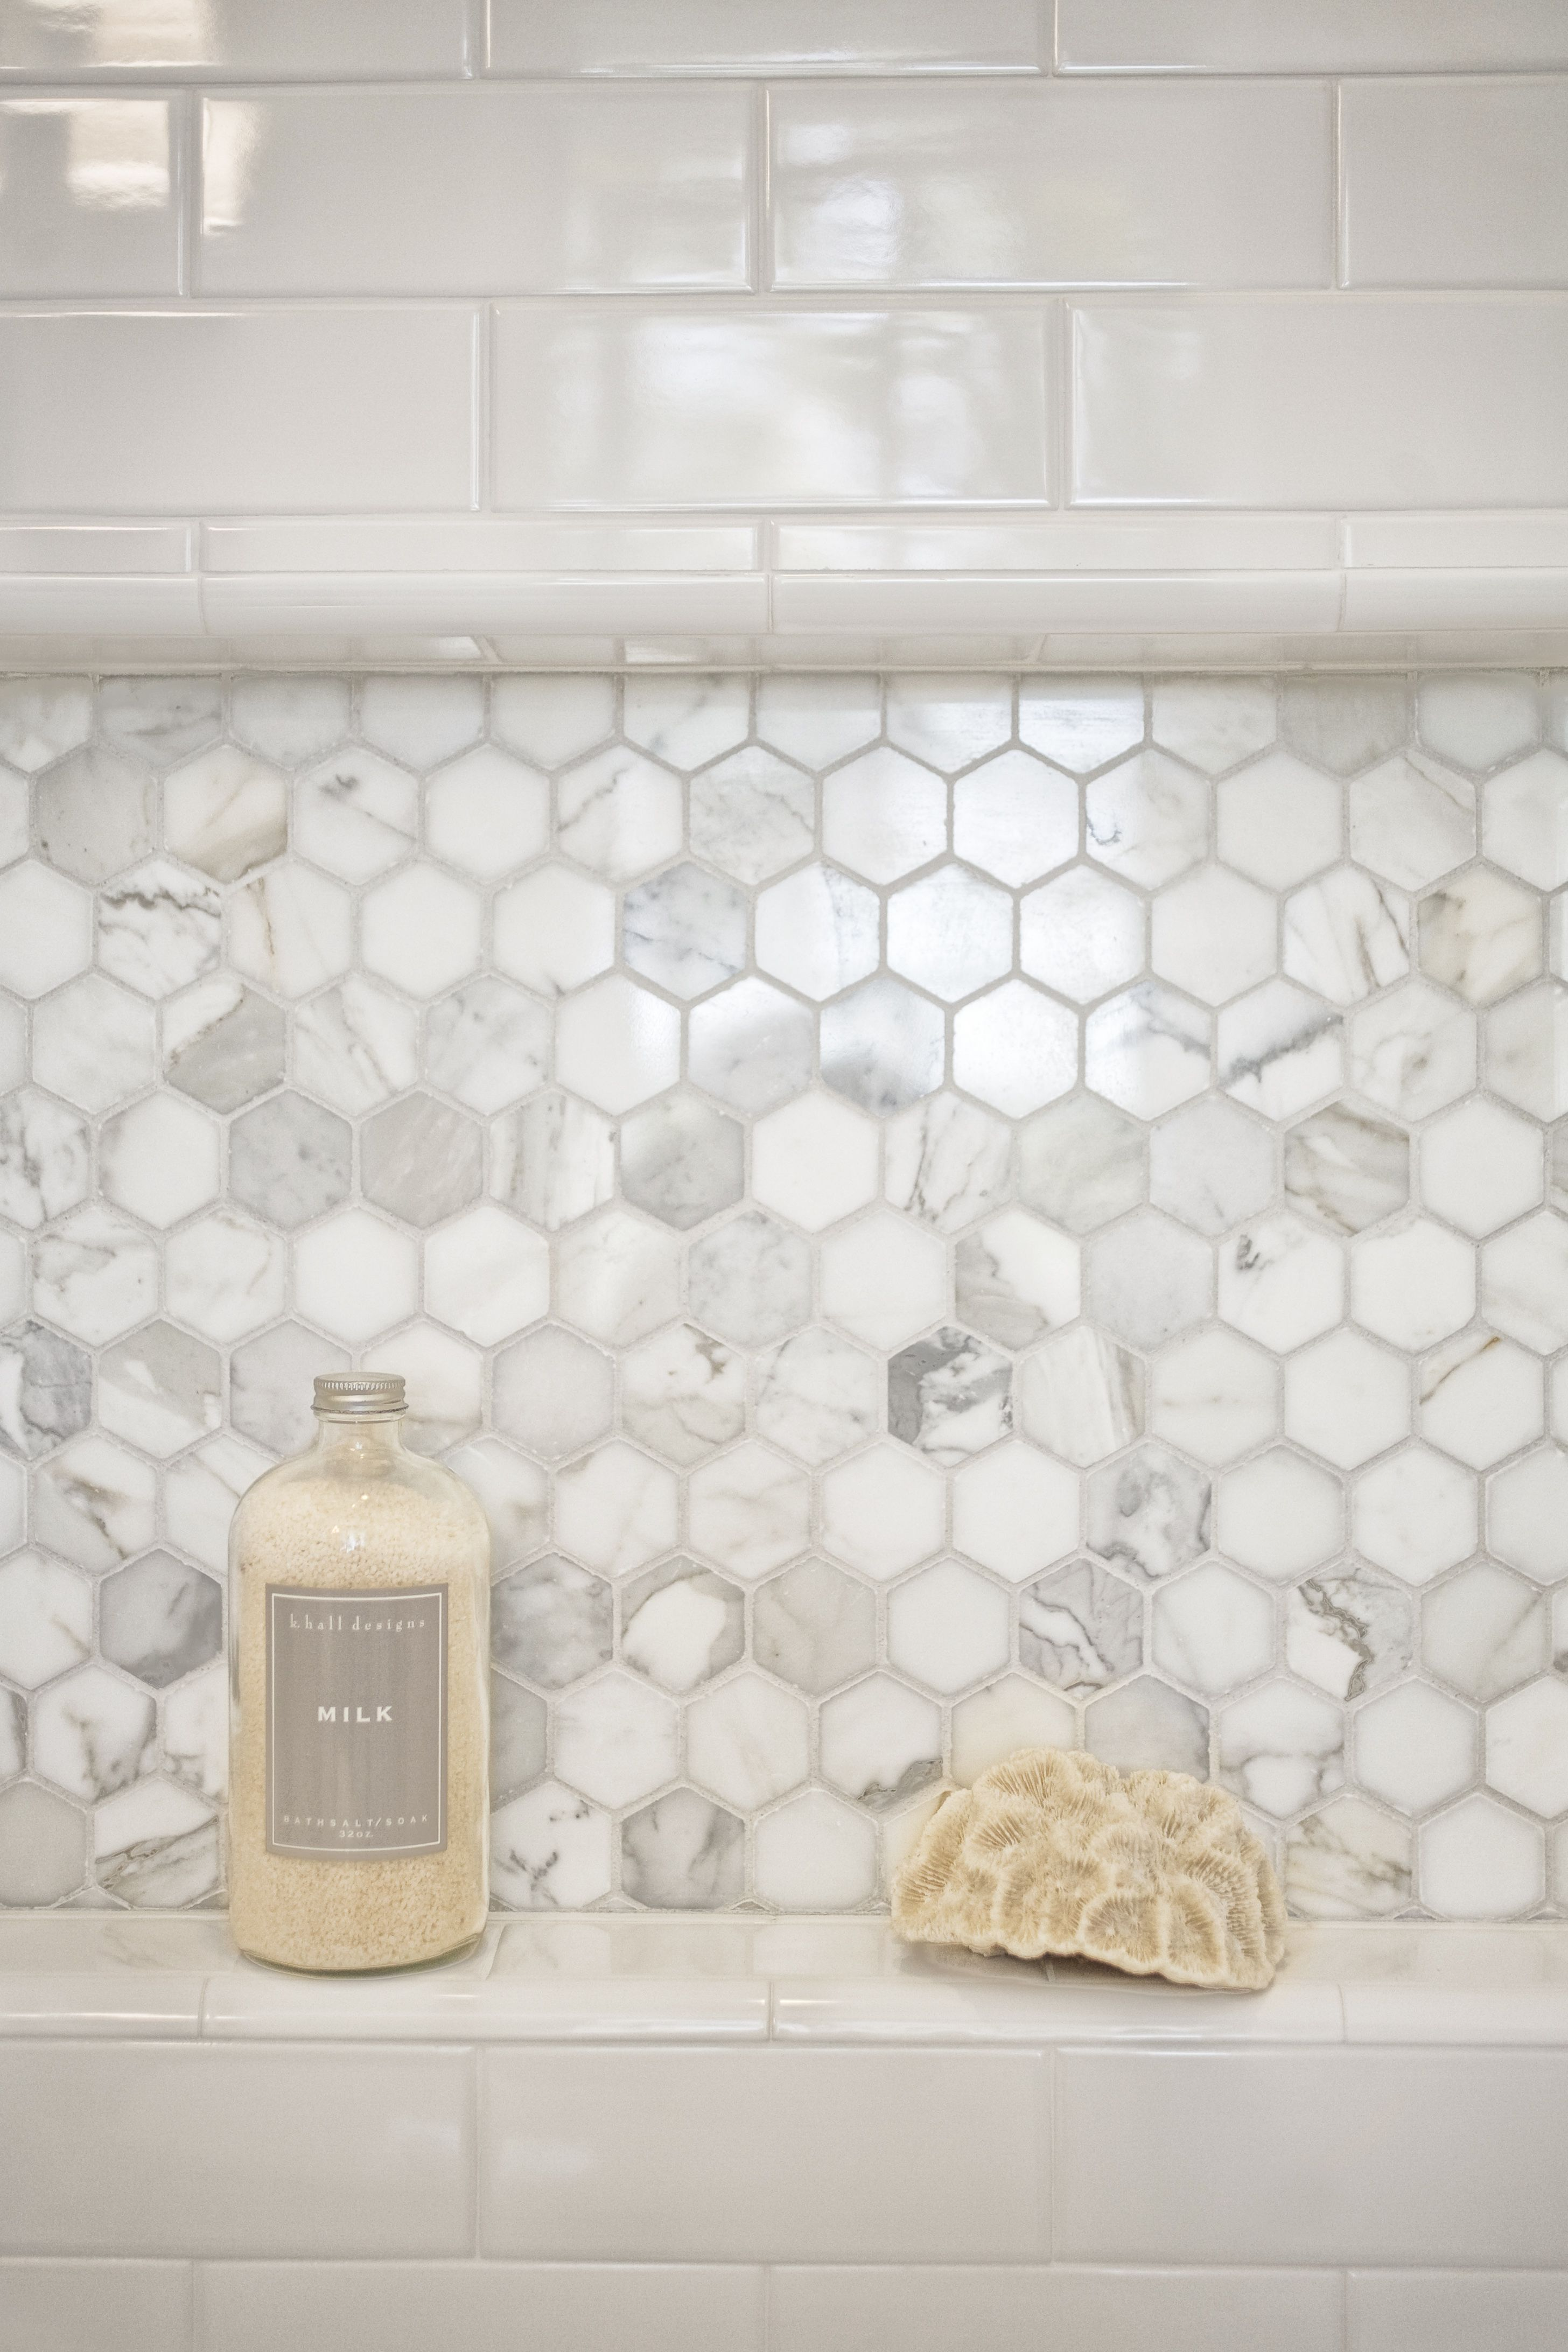 Mill valley estate bathroom shower niche tile is calacatta in this bathroom youre mixing plain white subway tiles with marble mosaic pieces it definitely makes the shower area shine and with just a hint of color dailygadgetfo Images